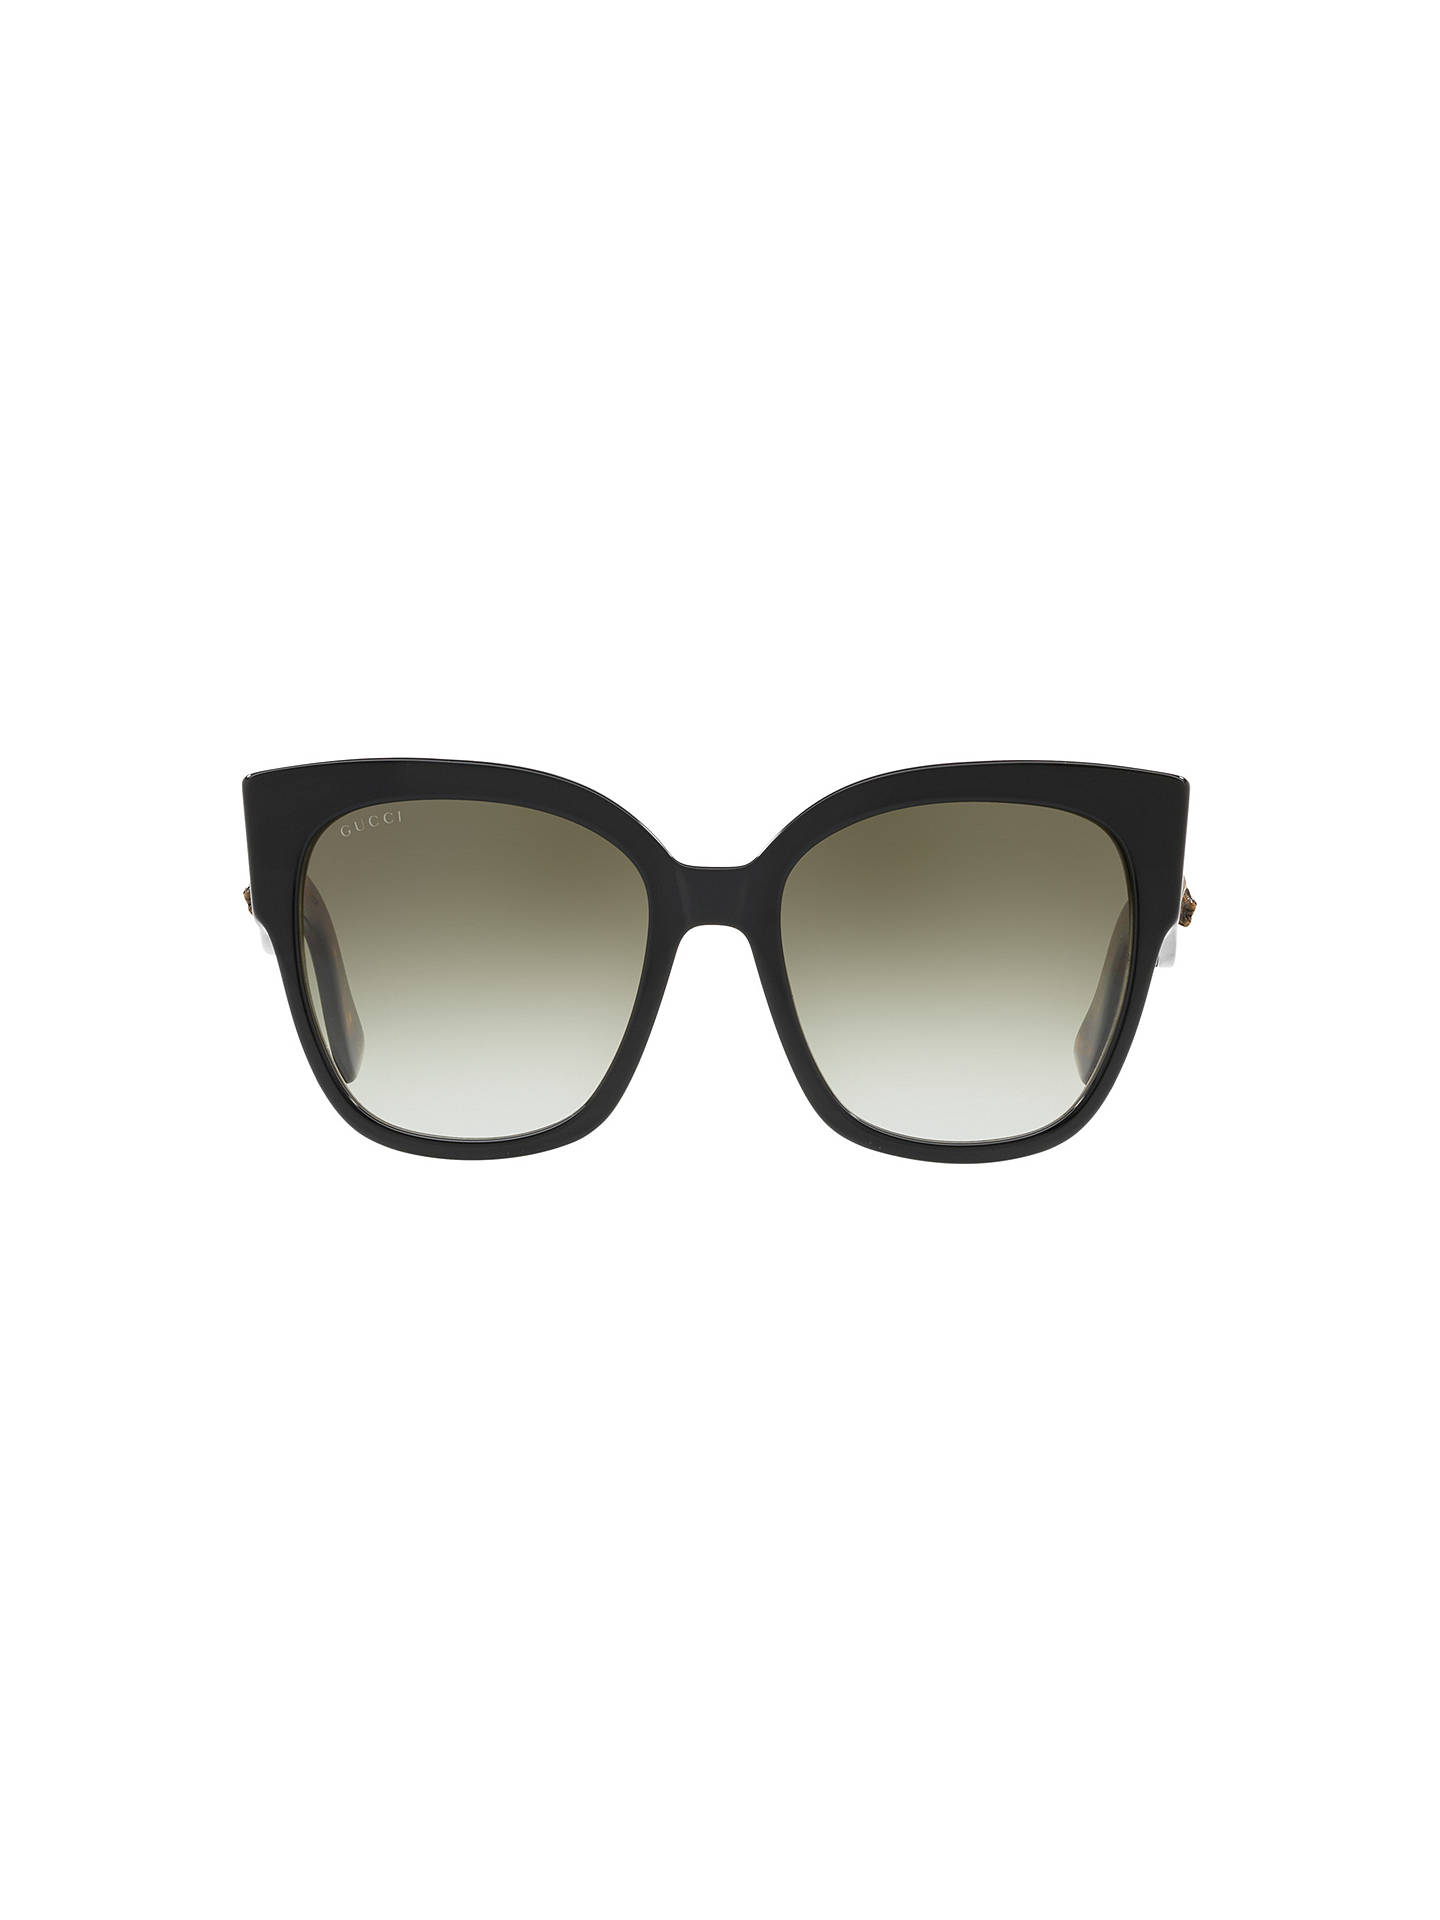 203bb0f0b ... Buy Gucci GG0069S Studded Square Sunglasses, Black/Grey Gradient Online  at johnlewis.com ...